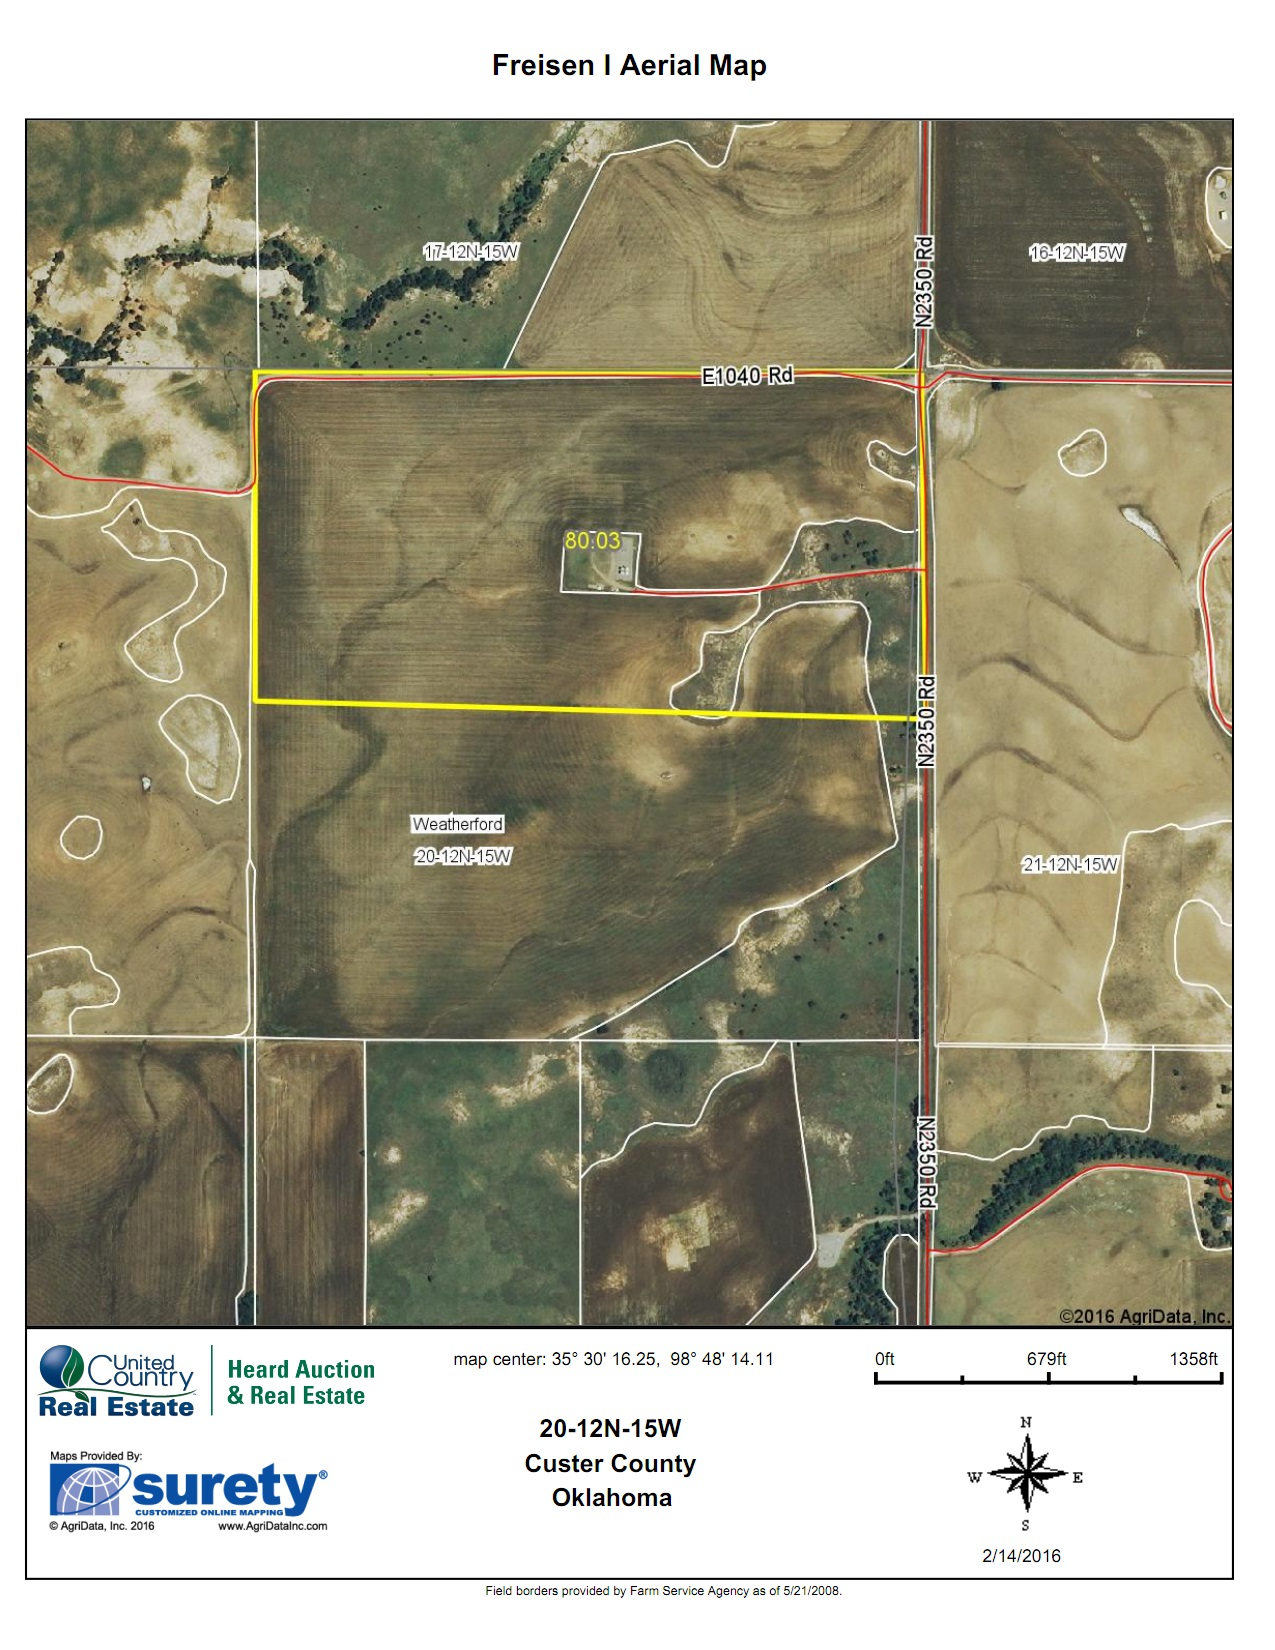 Oklahoma Farm for Sale, Custer County, Tract 3